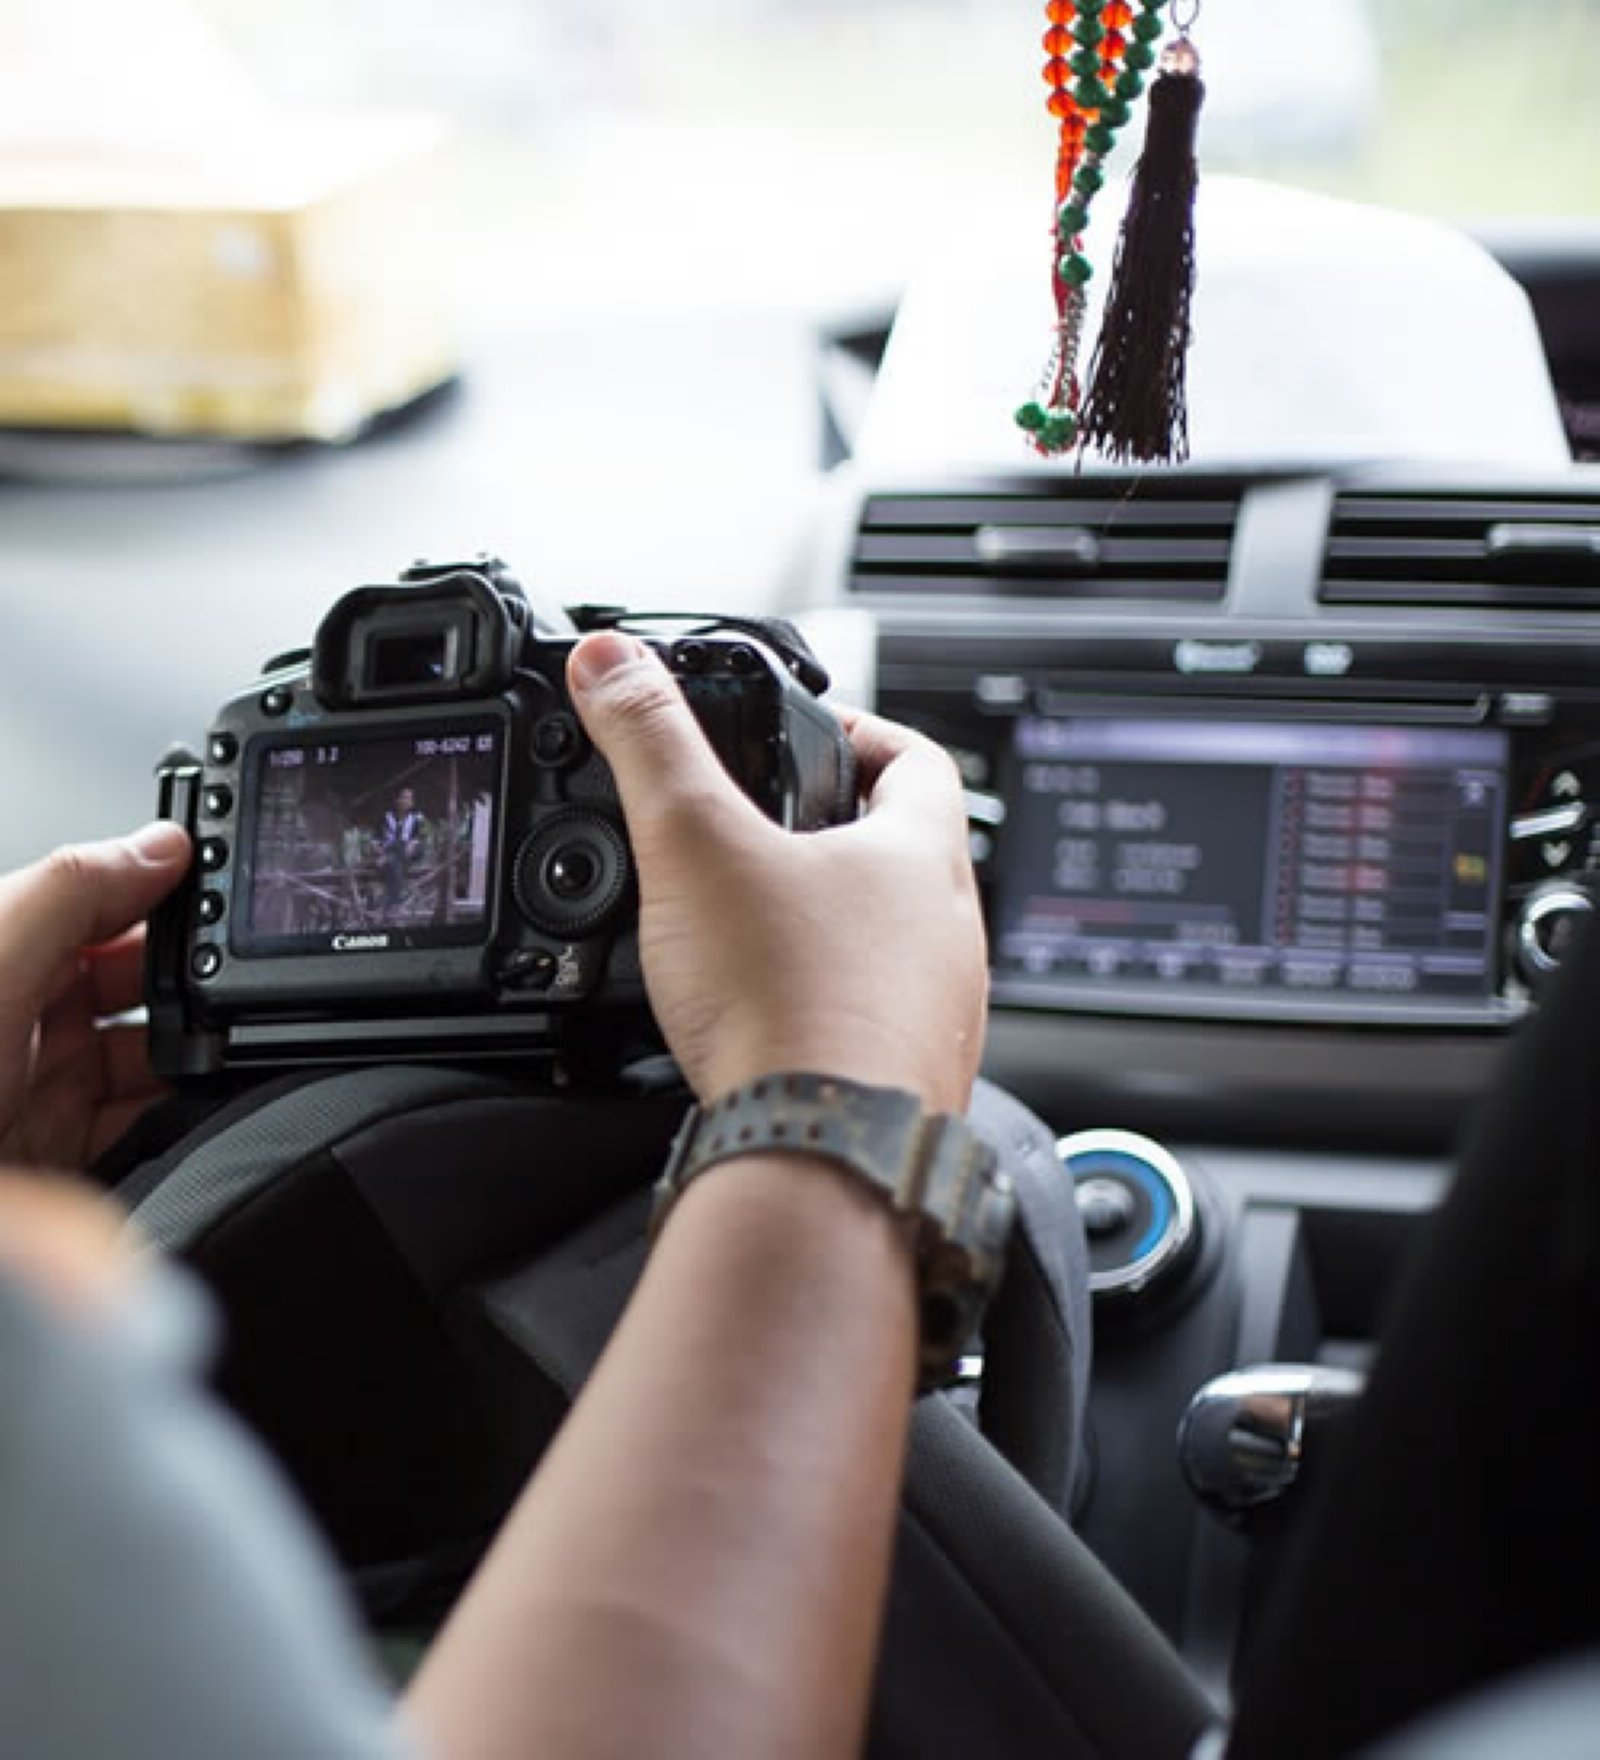 surveillance from car